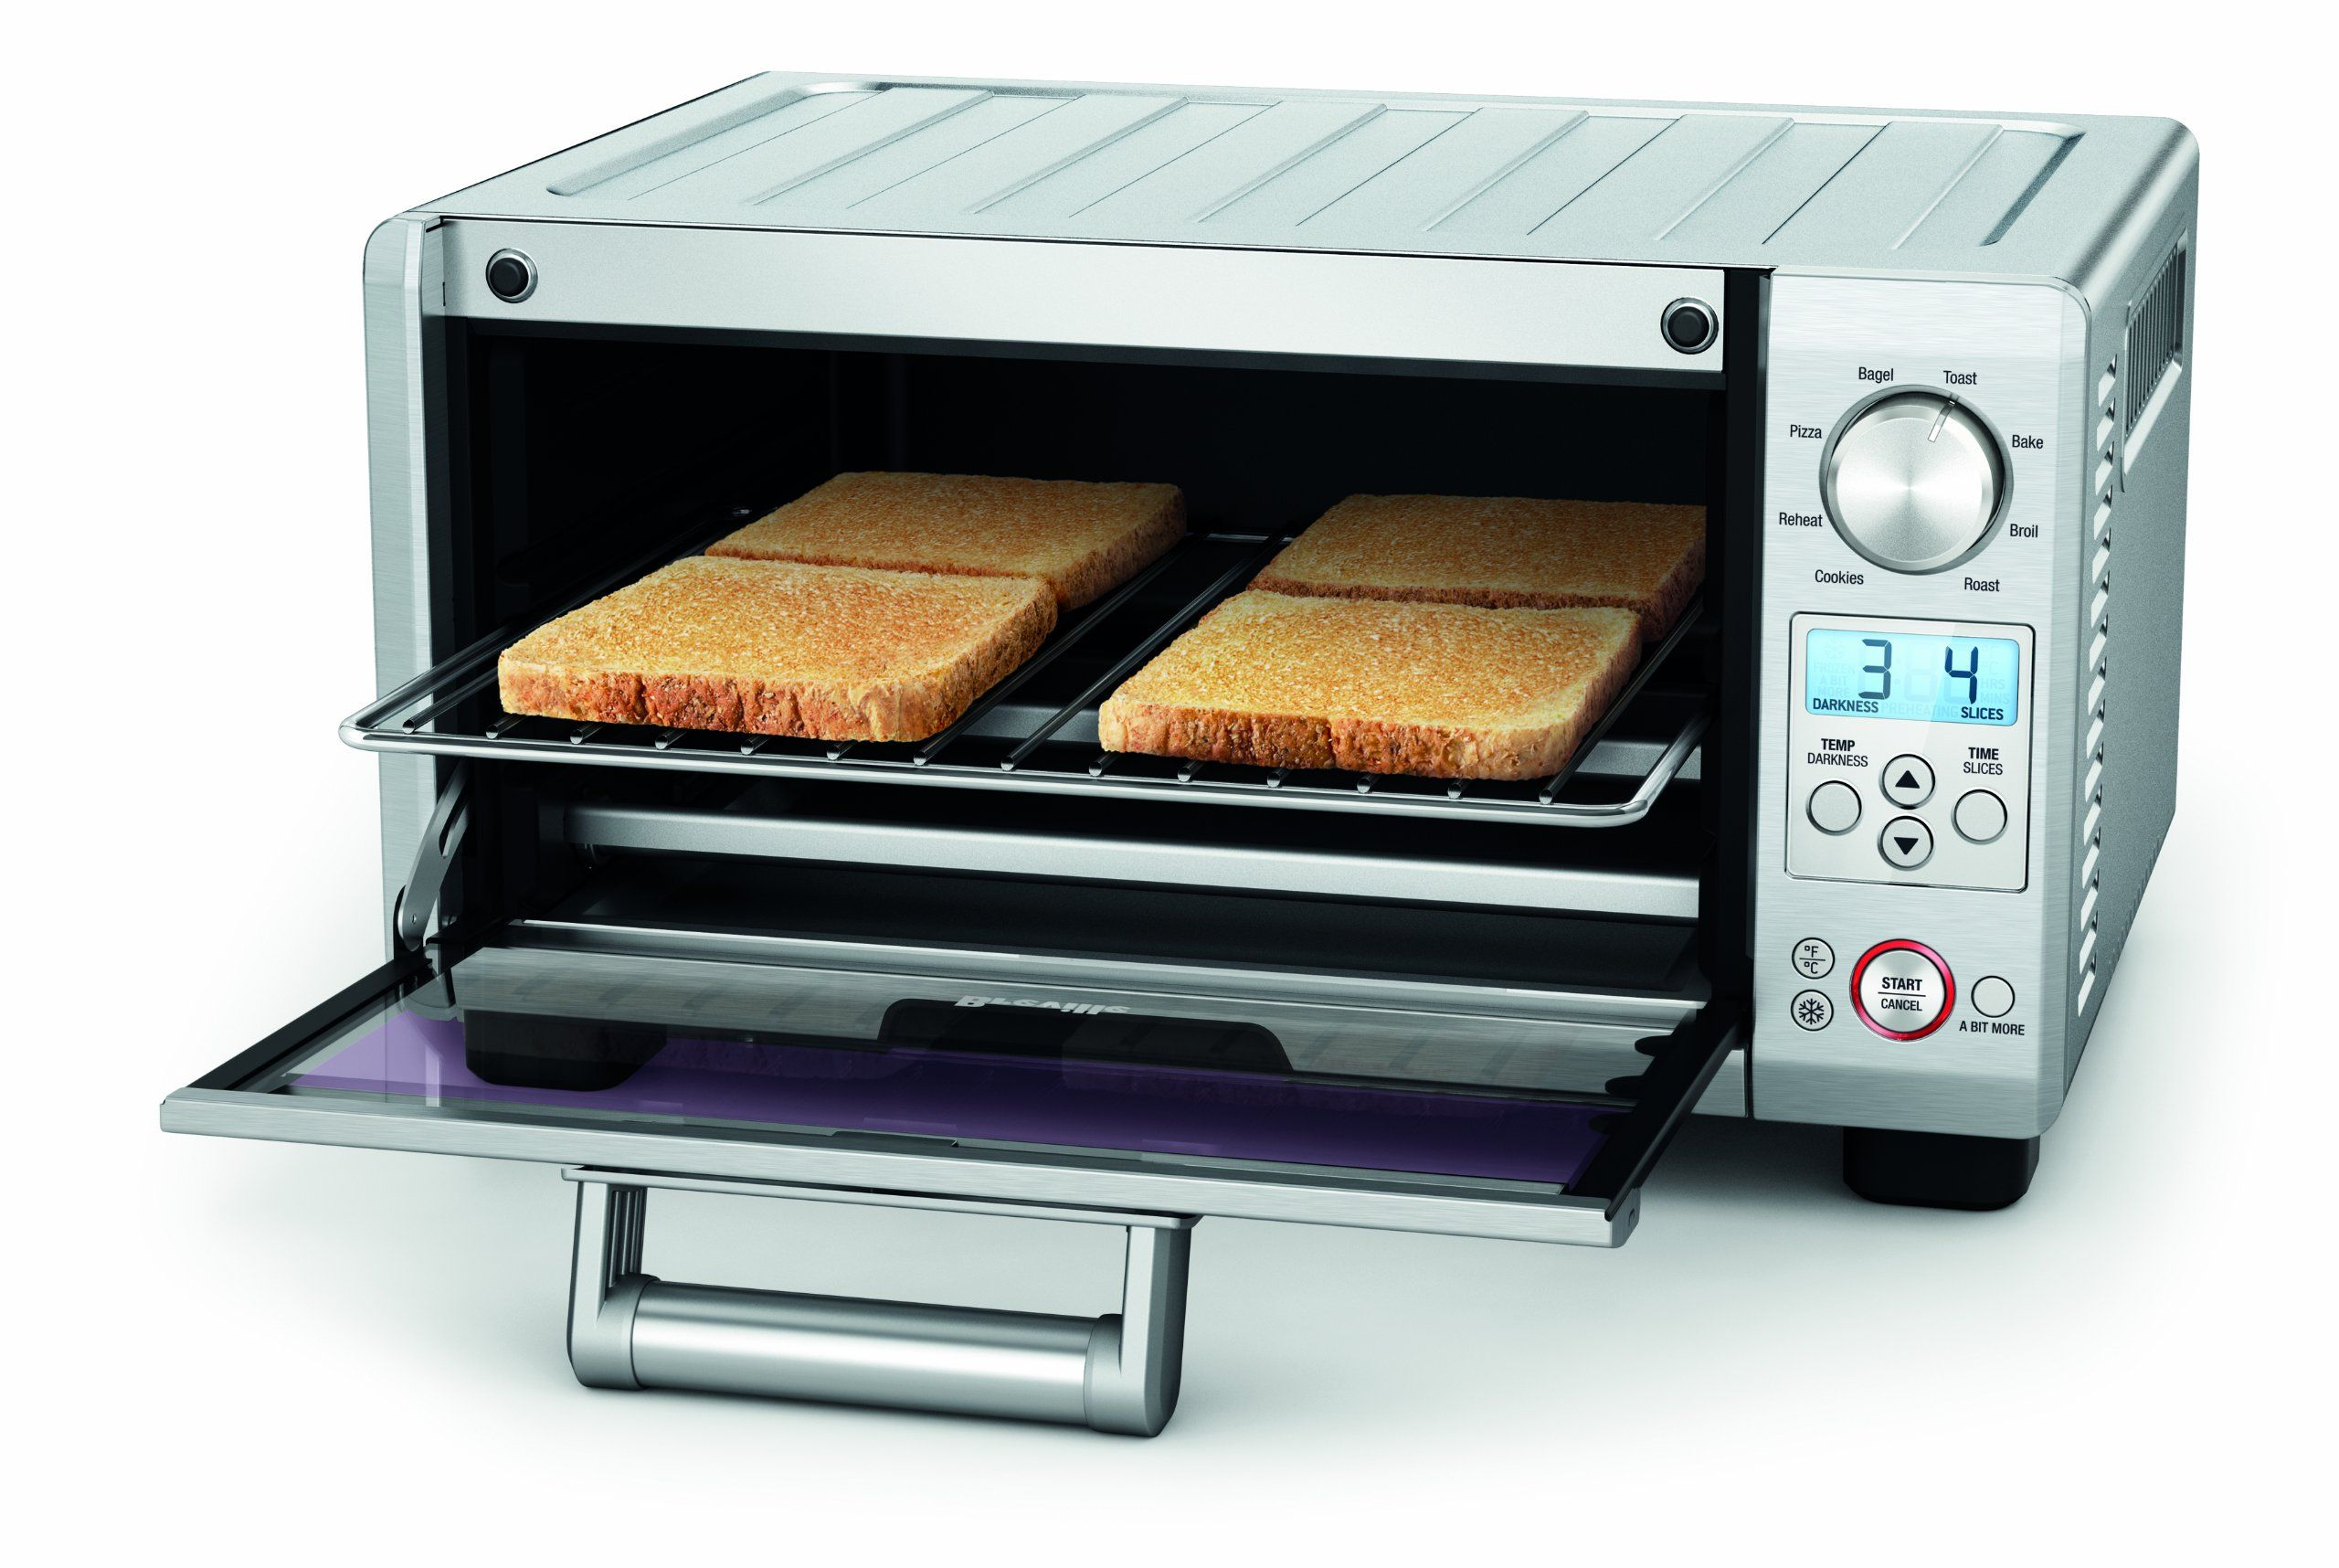 Amazon Com Breville Bov450xl Mini Smart Oven With Element Iq Countertop Ovens Kitchen Dining Smart Oven Healthy Filling Snacks Toaster Oven